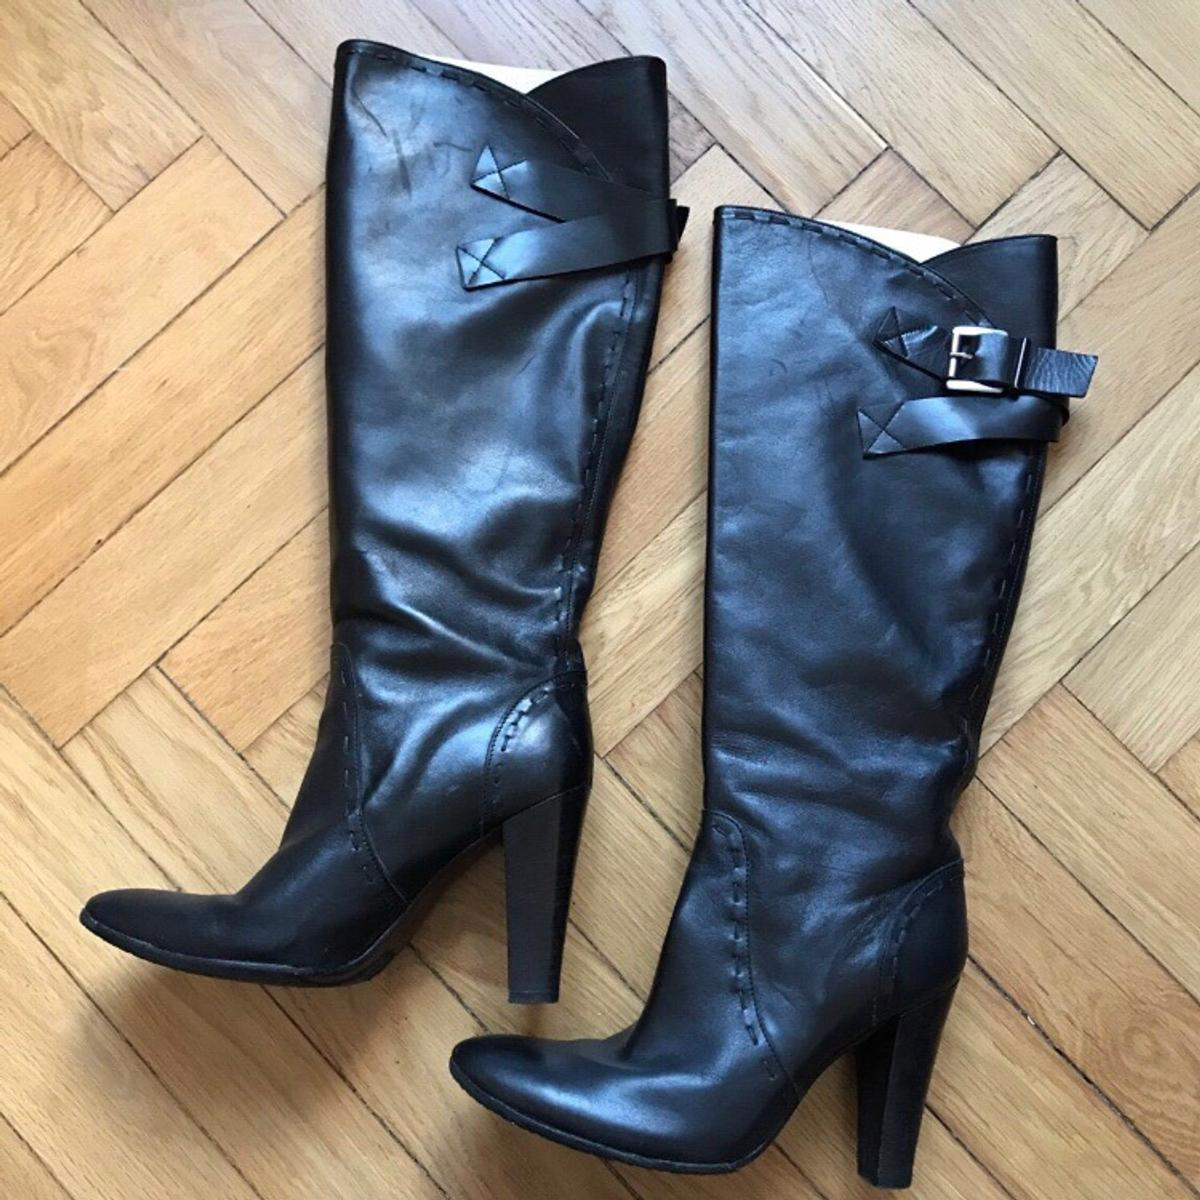 c2c0a3929 Nya Vero Cuoio stövlar boots skinn 38 in 120 30 Stockholm for SEK 650.00  for sale - Shpock